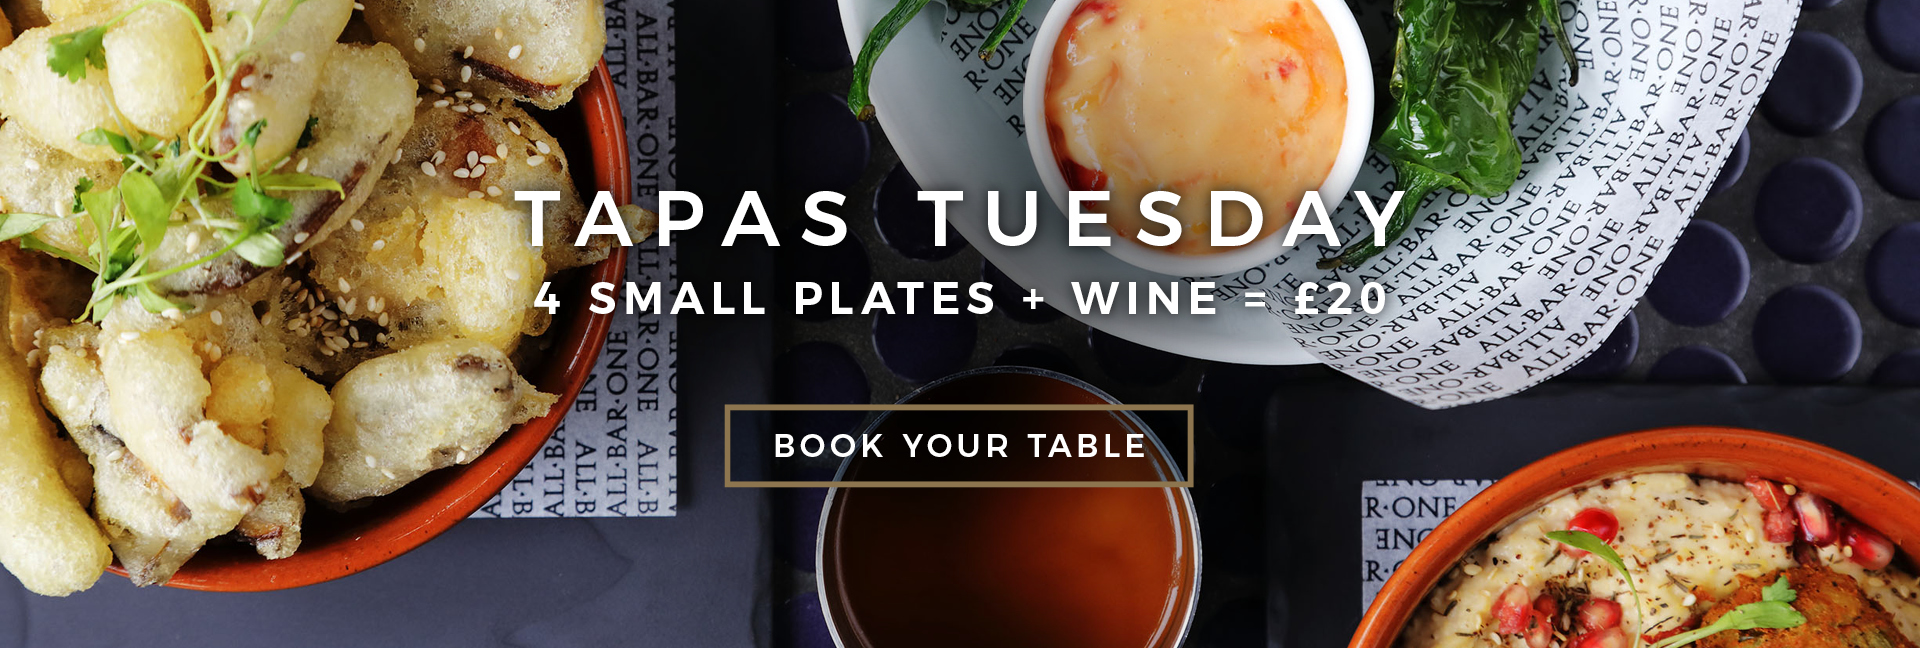 Tapas Tuesday at All Bar One Nottingham - Book now